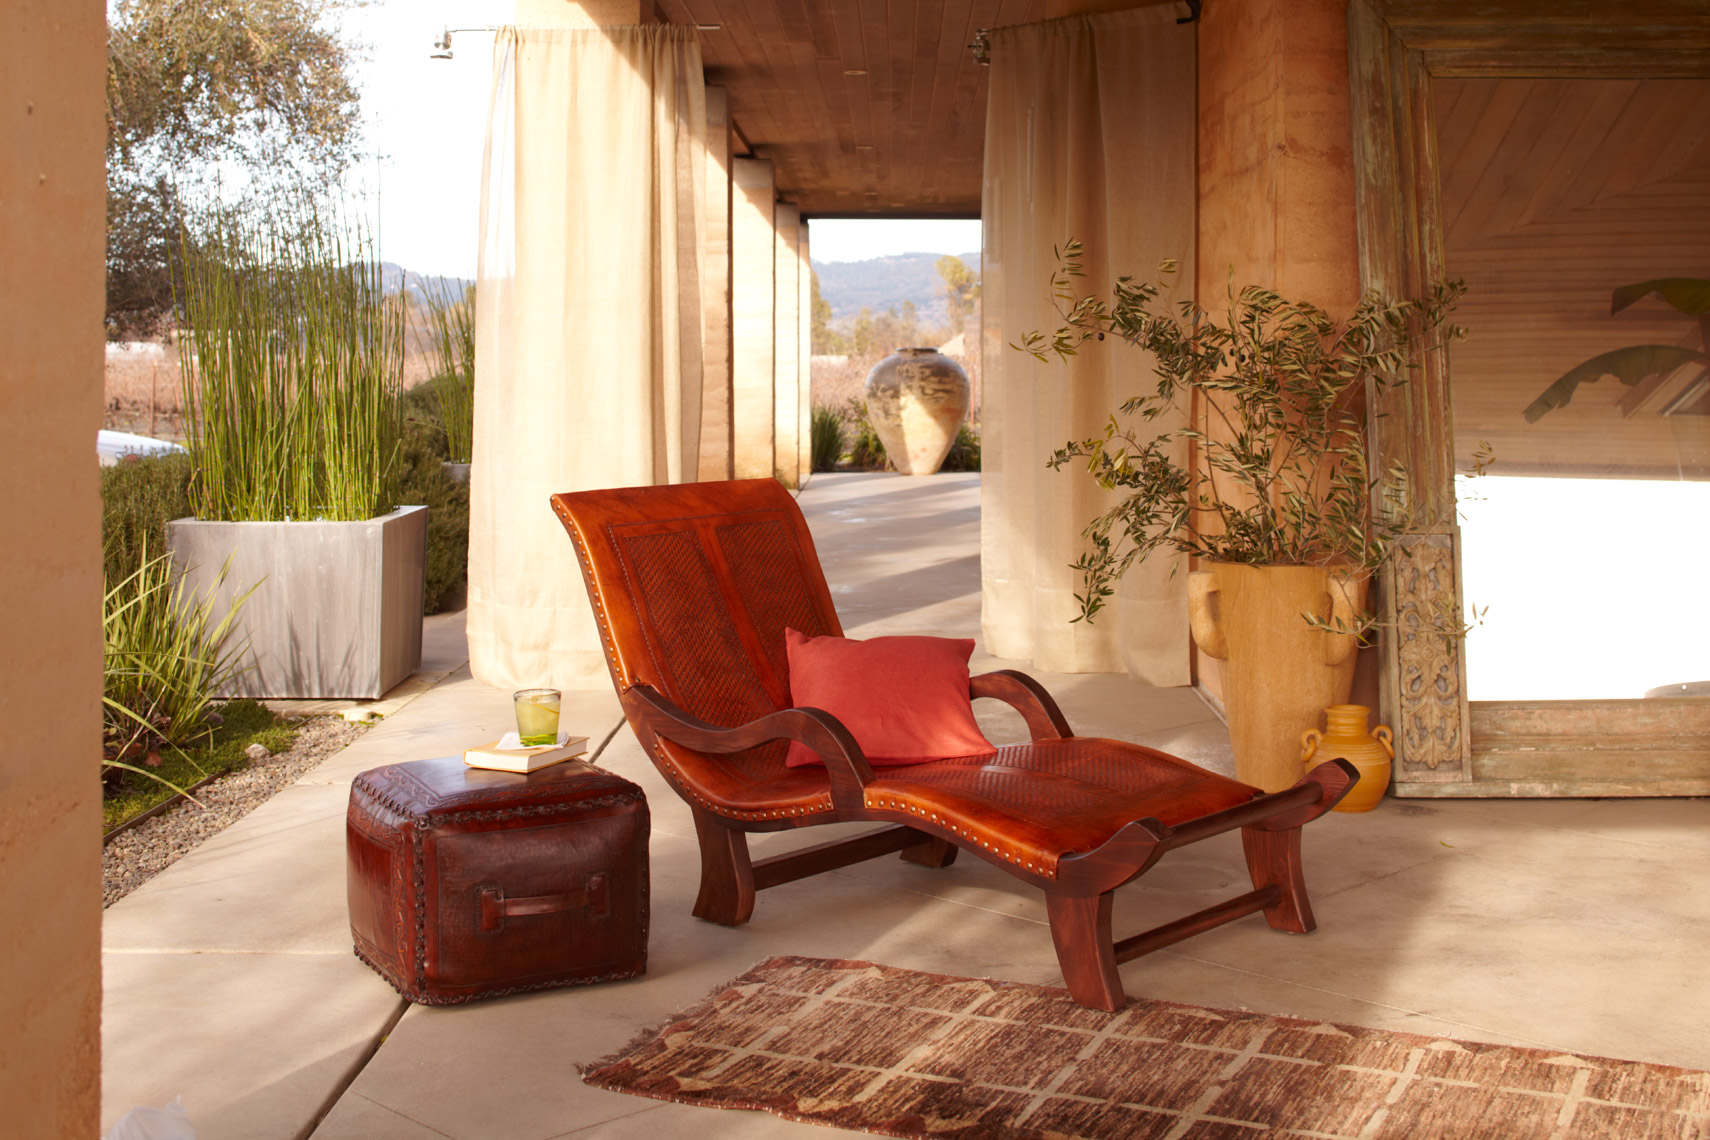 Leather and wood chaise chair on tile patio with rug San Francisco lifestyle photographer